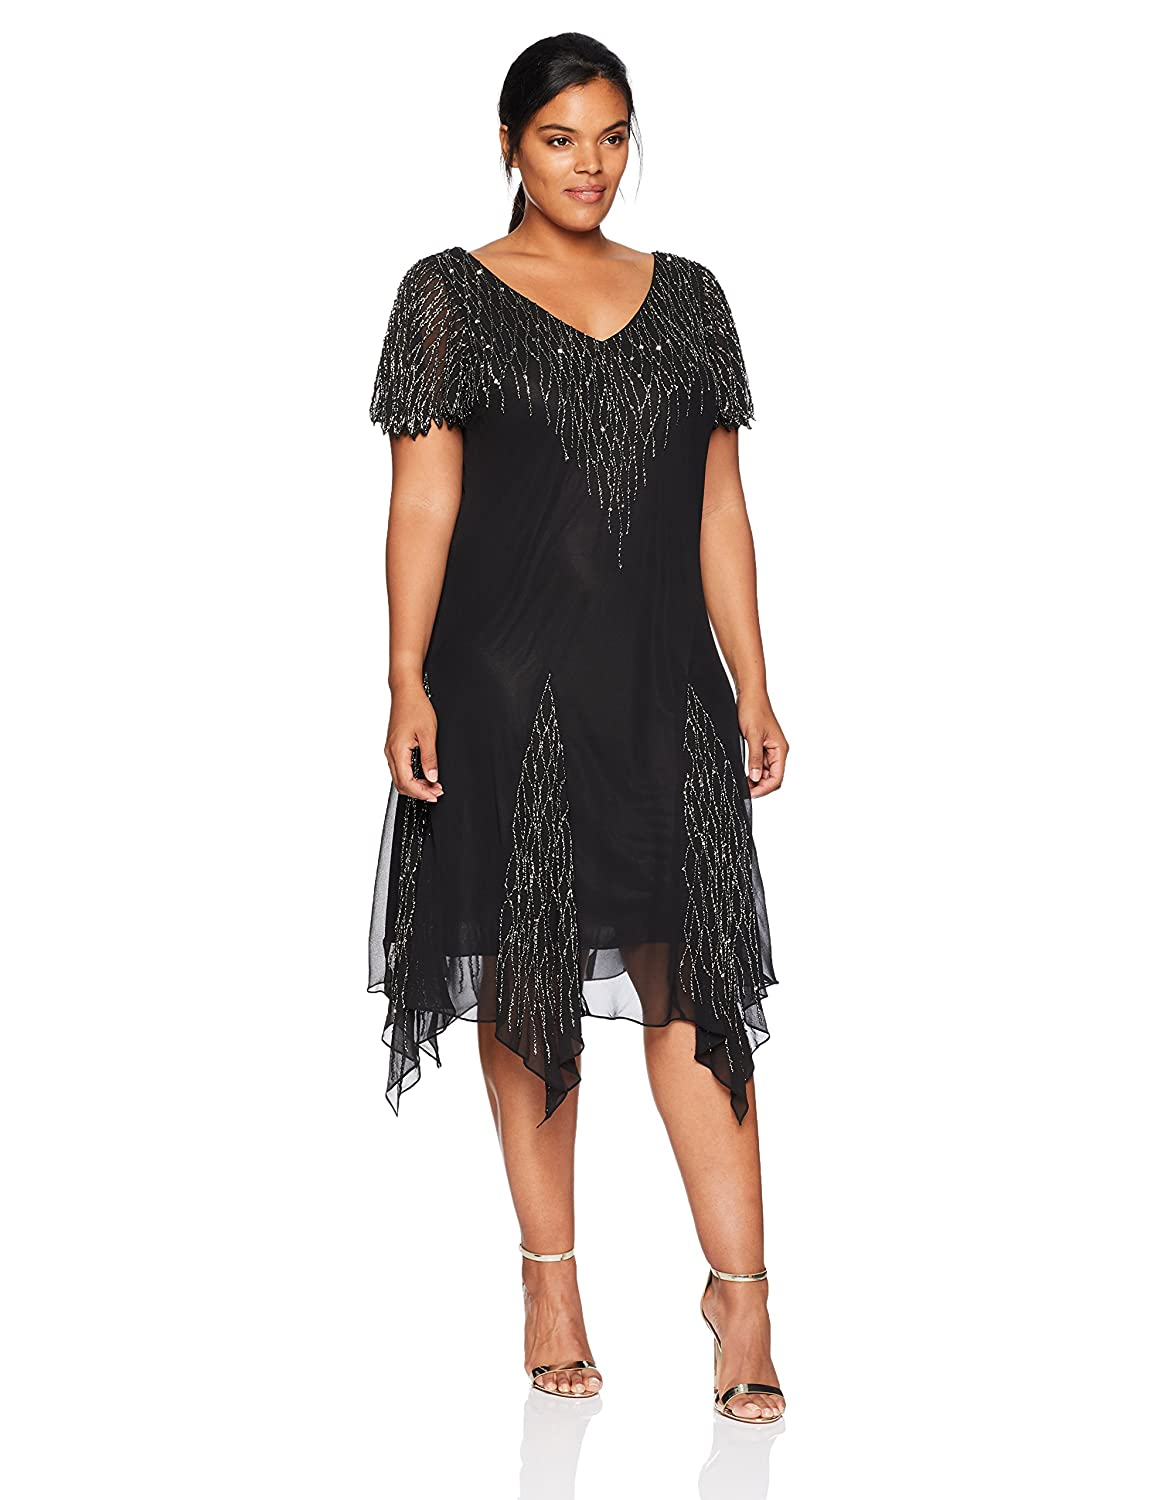 Black Mercury J Kara Womens Plus Size Short Beaded Dress Special Occasion Dress